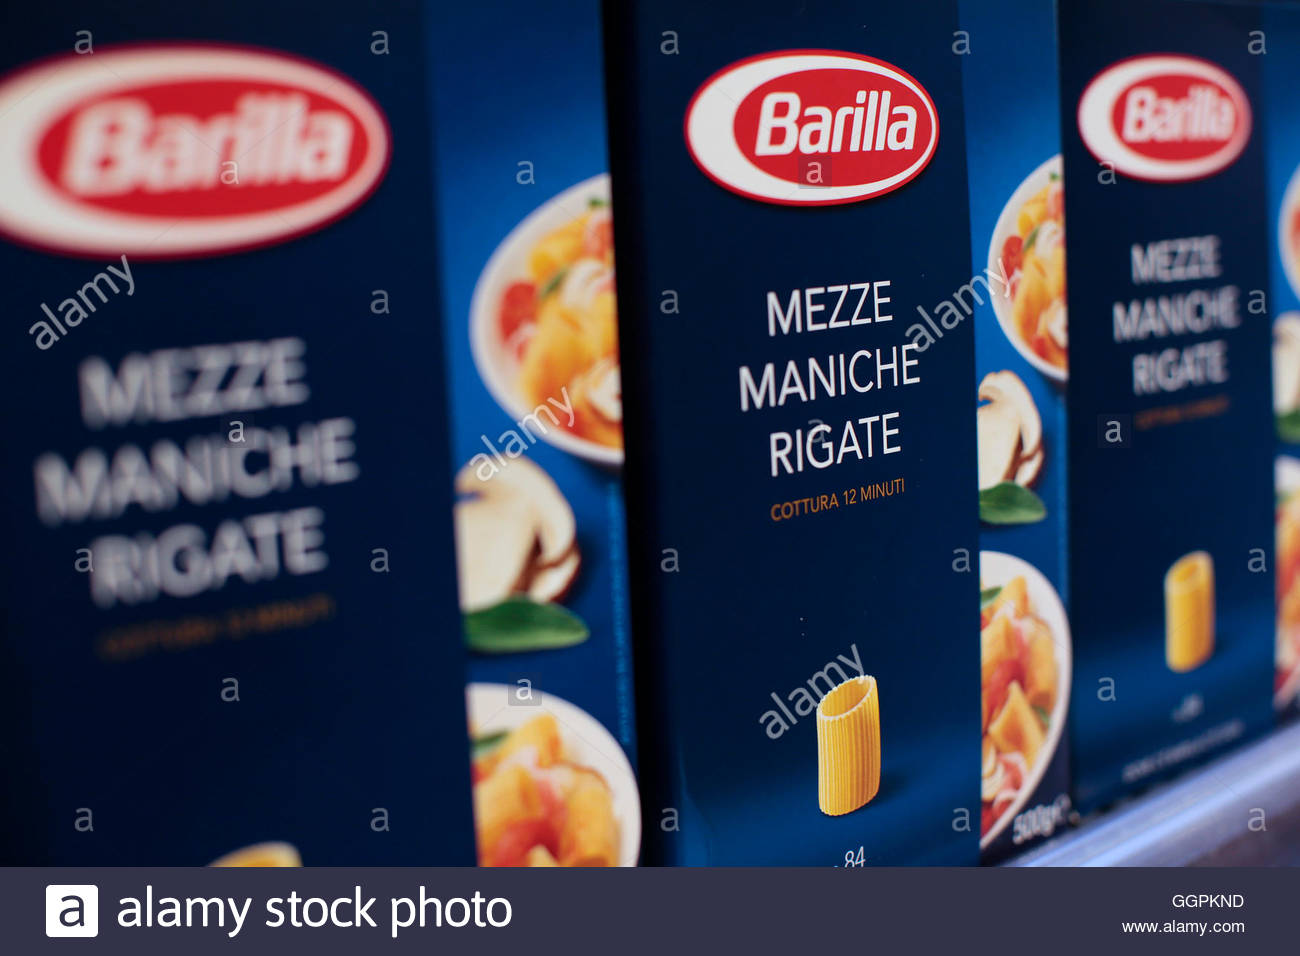 barilla stock photos barilla stock images alamy packs of barilla pasta are seen in a supermarket in rome 27 2013